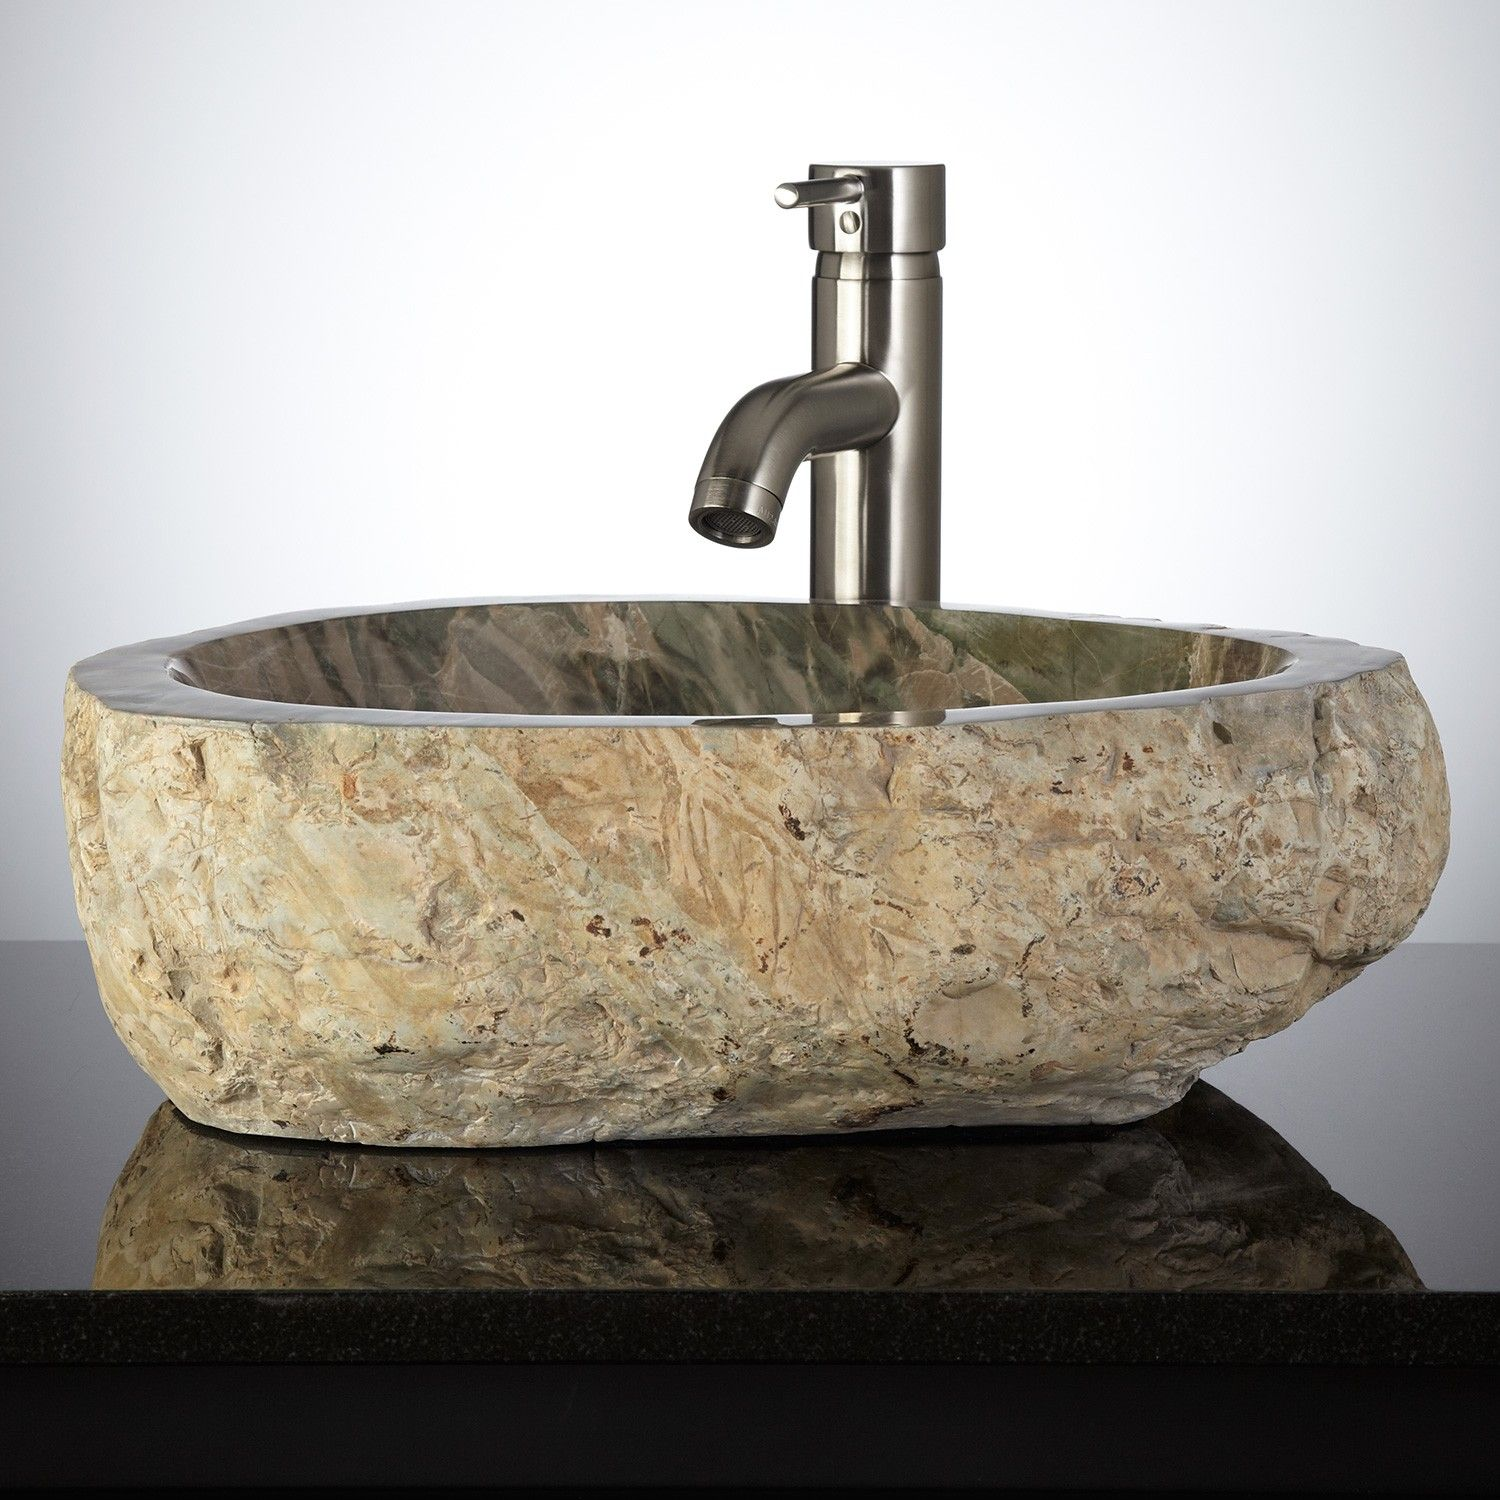 Liepa Natural Stone Vessel Sink   Vessel Sinks   Bathroom Sinks   Bathroom